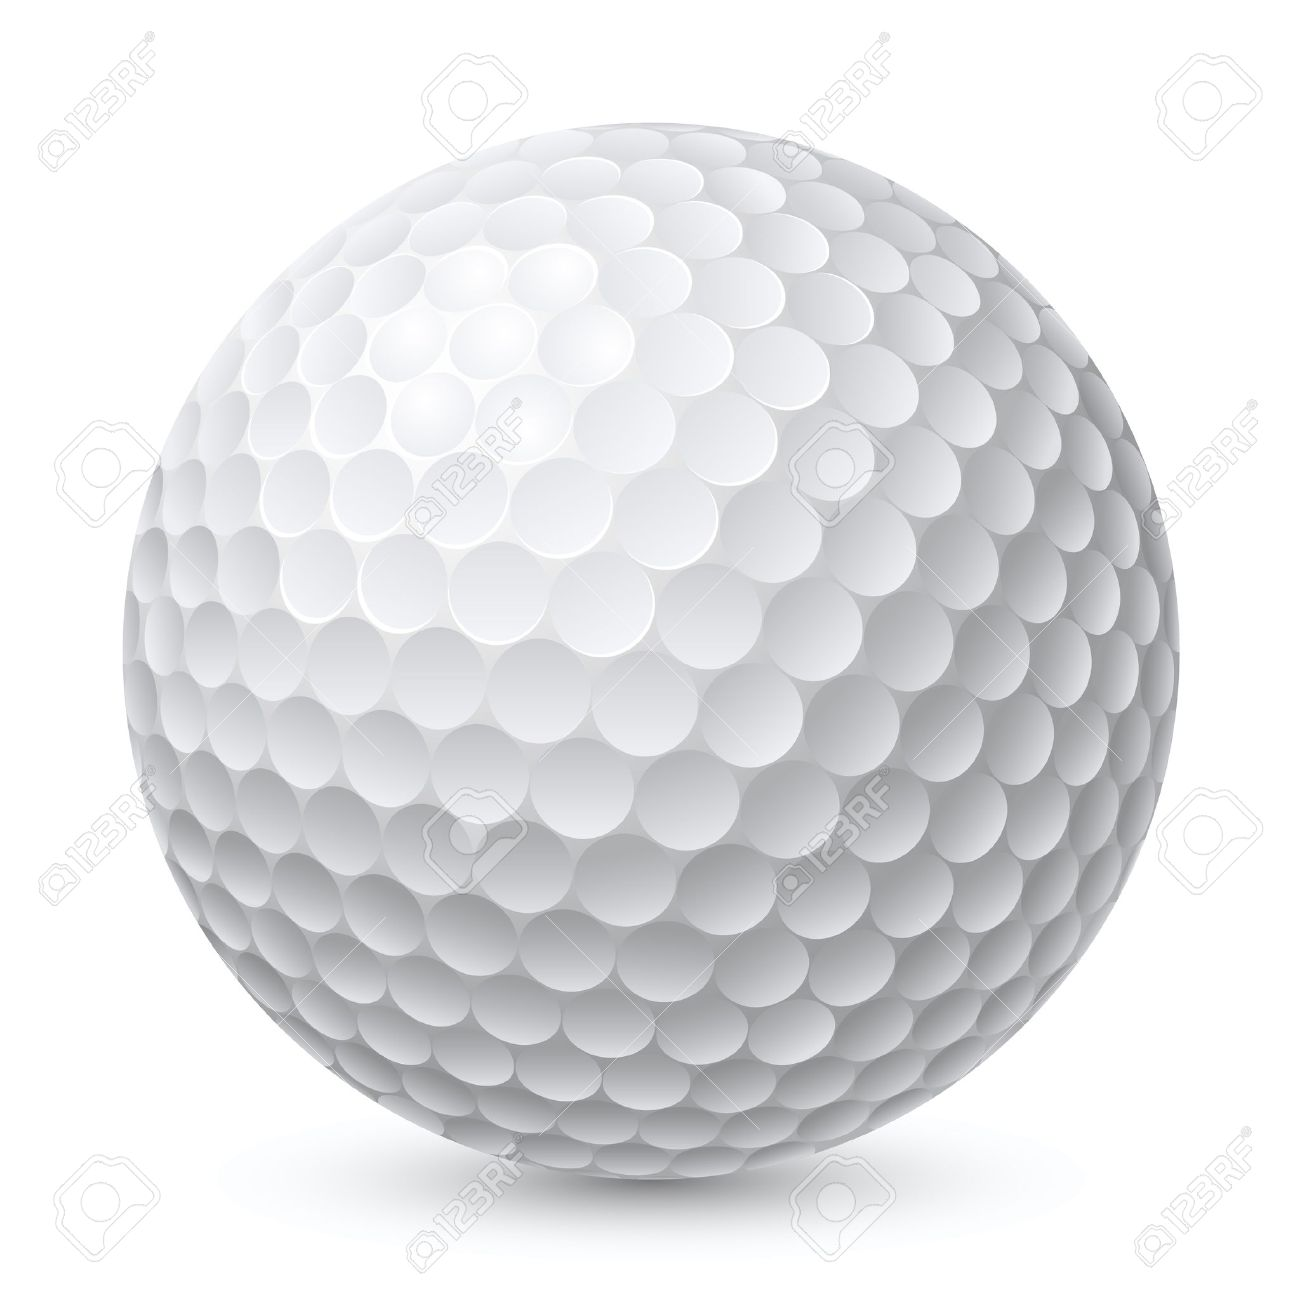 Golf Ball Clipart No Background.